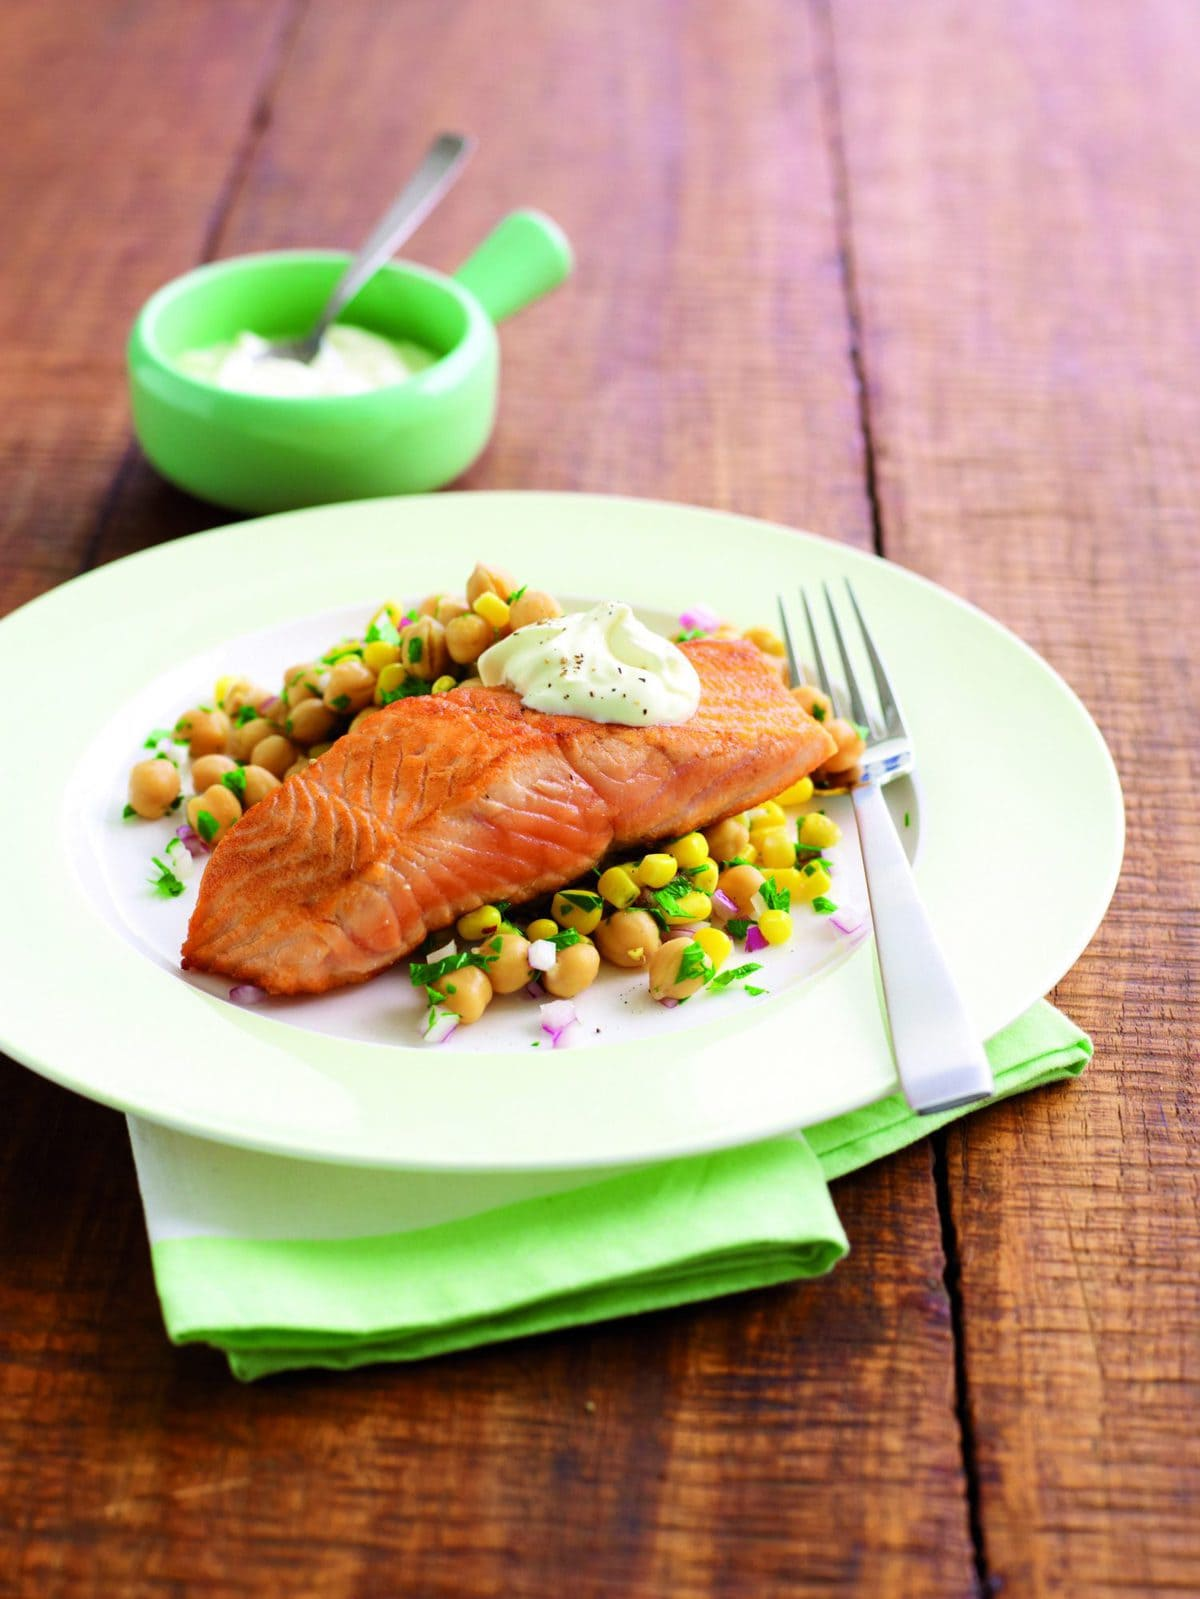 Pan-fried salmon with chickpea salad